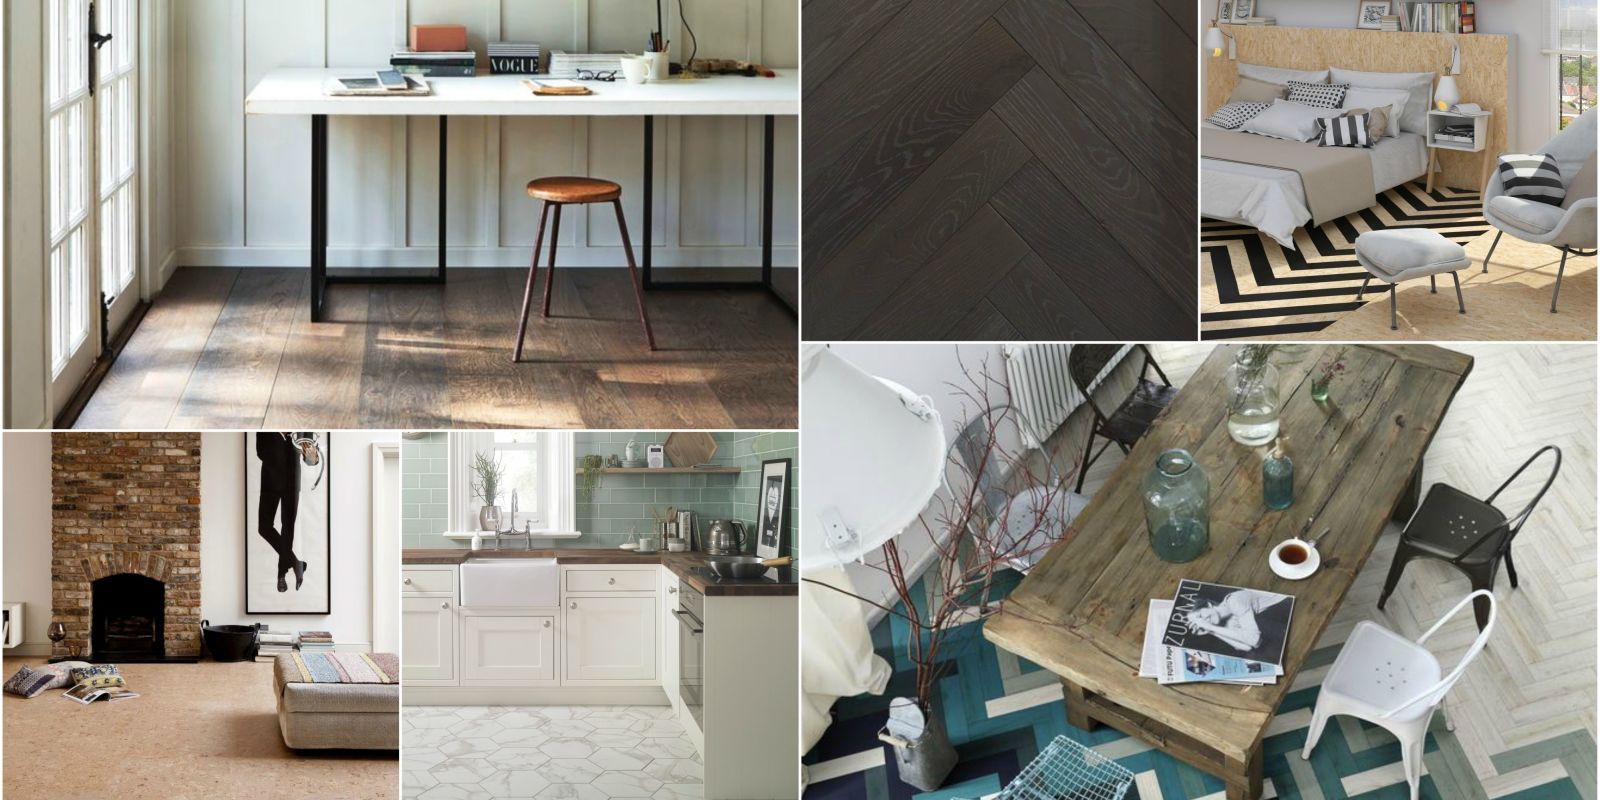 Trends in tile flooring